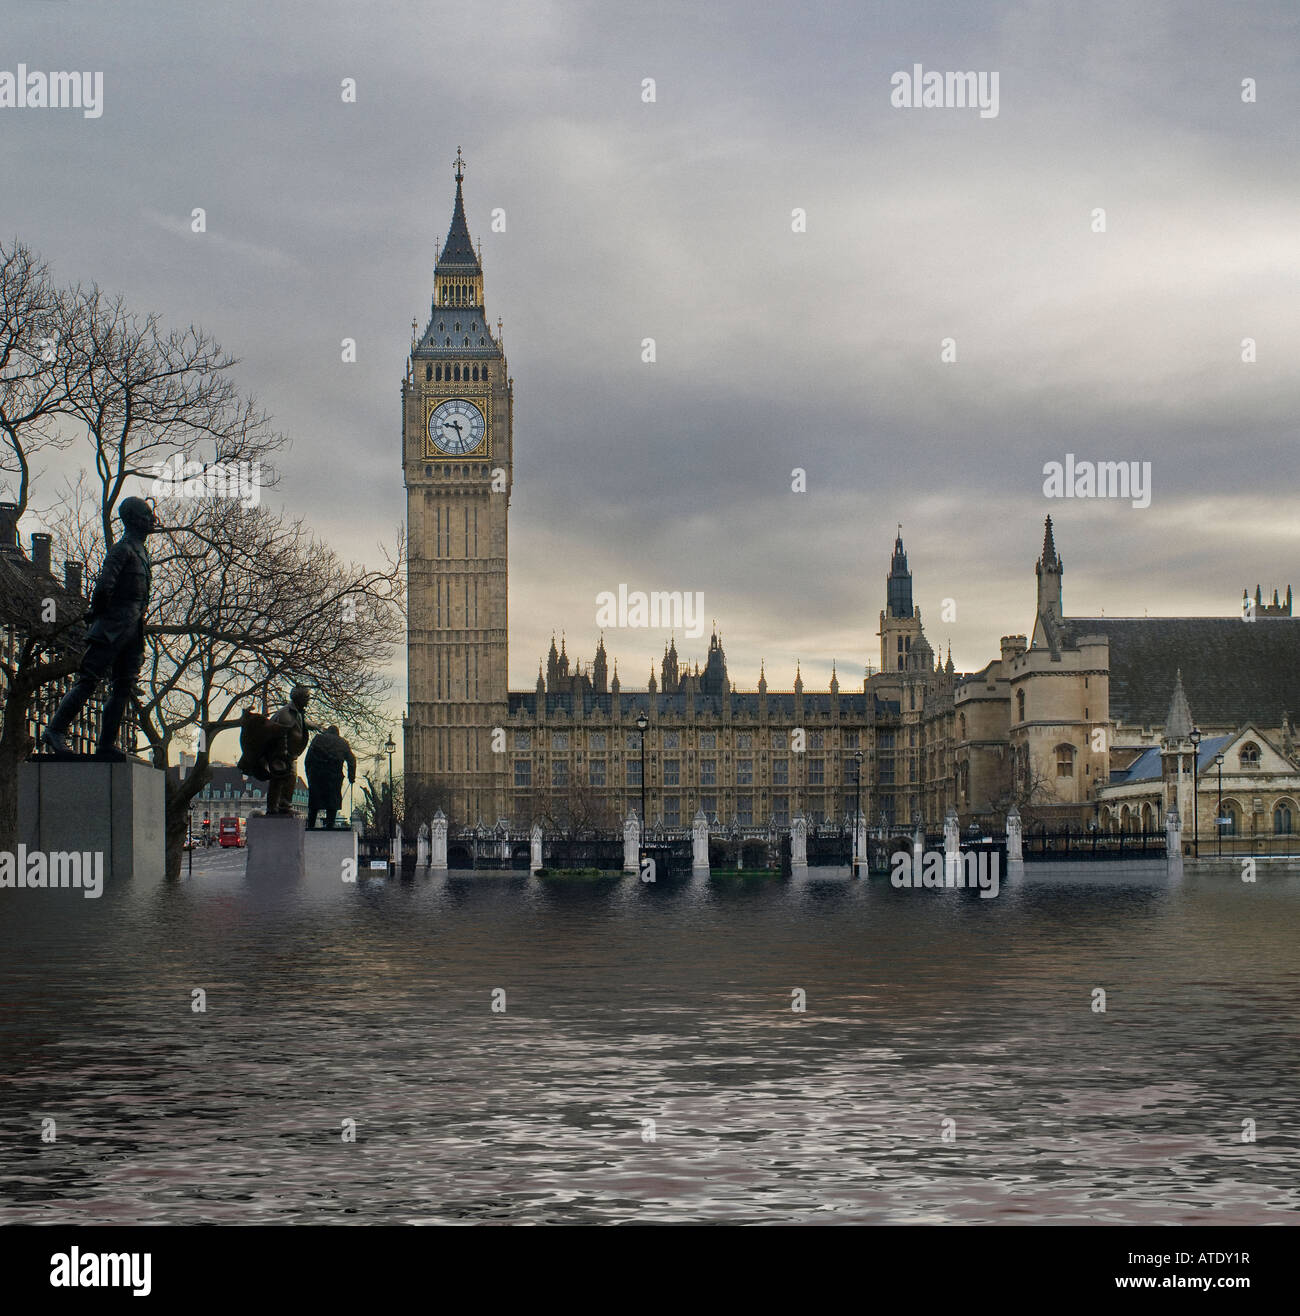 The House of Parliament and Parliament square flooded and underwater - Stock Image